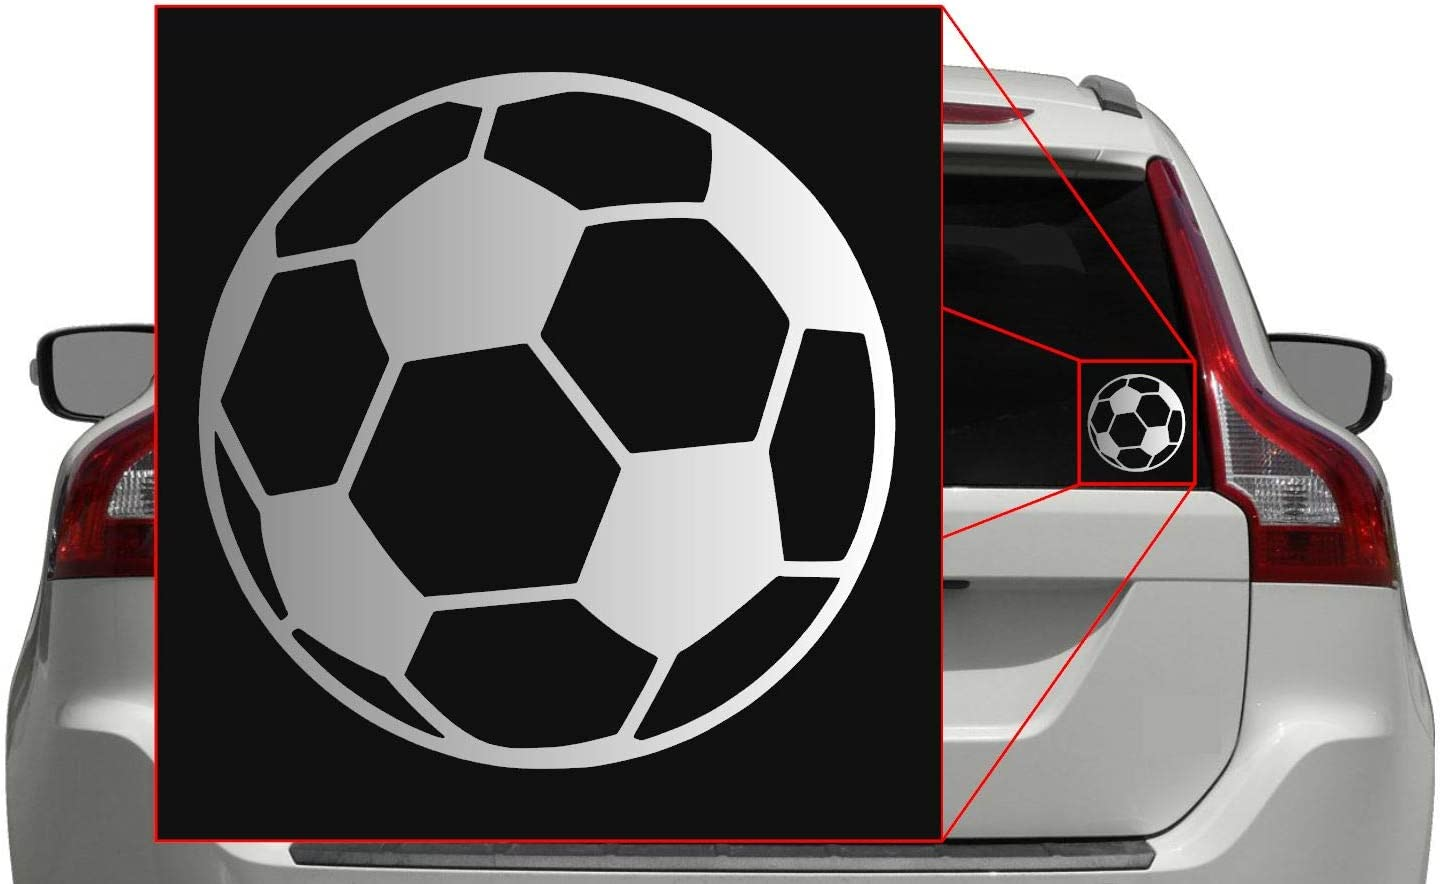 Vinyl Transfer Sticker Decal for Laptop//Car//Truck//Window//Bumper Pick Any Color 5in x 5in, Black Soccer Ball